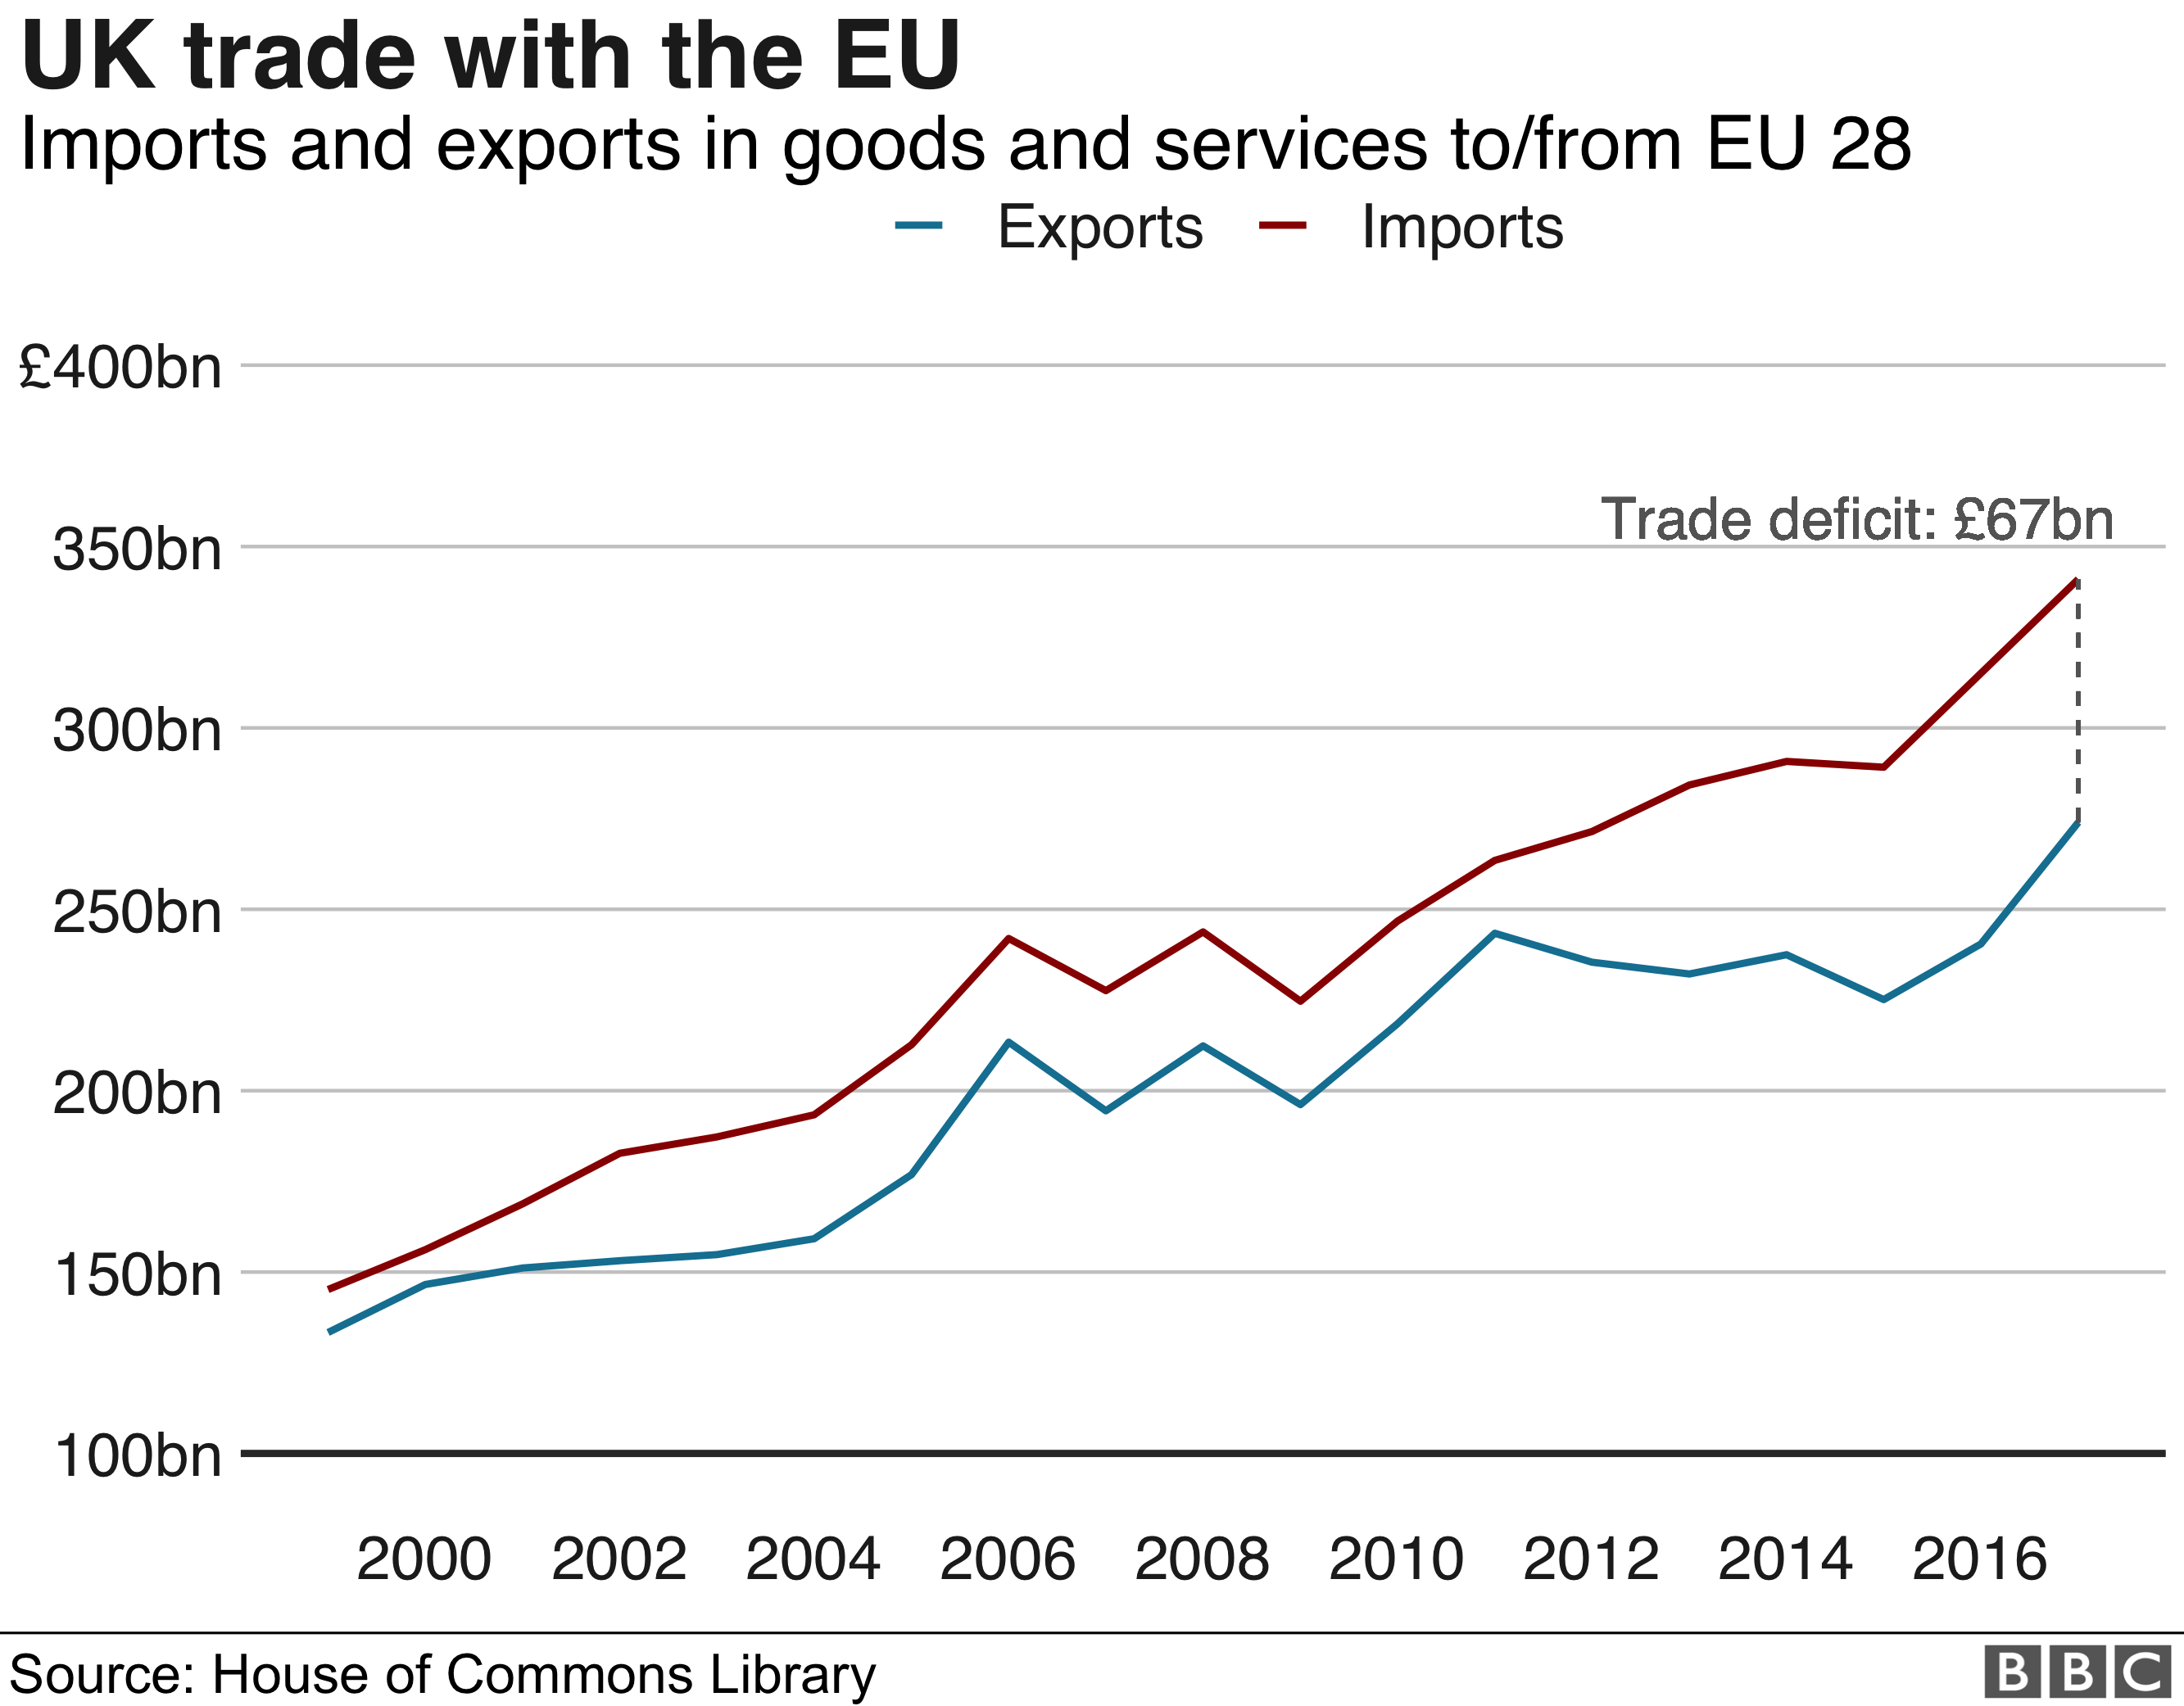 UK trade with the EU graph